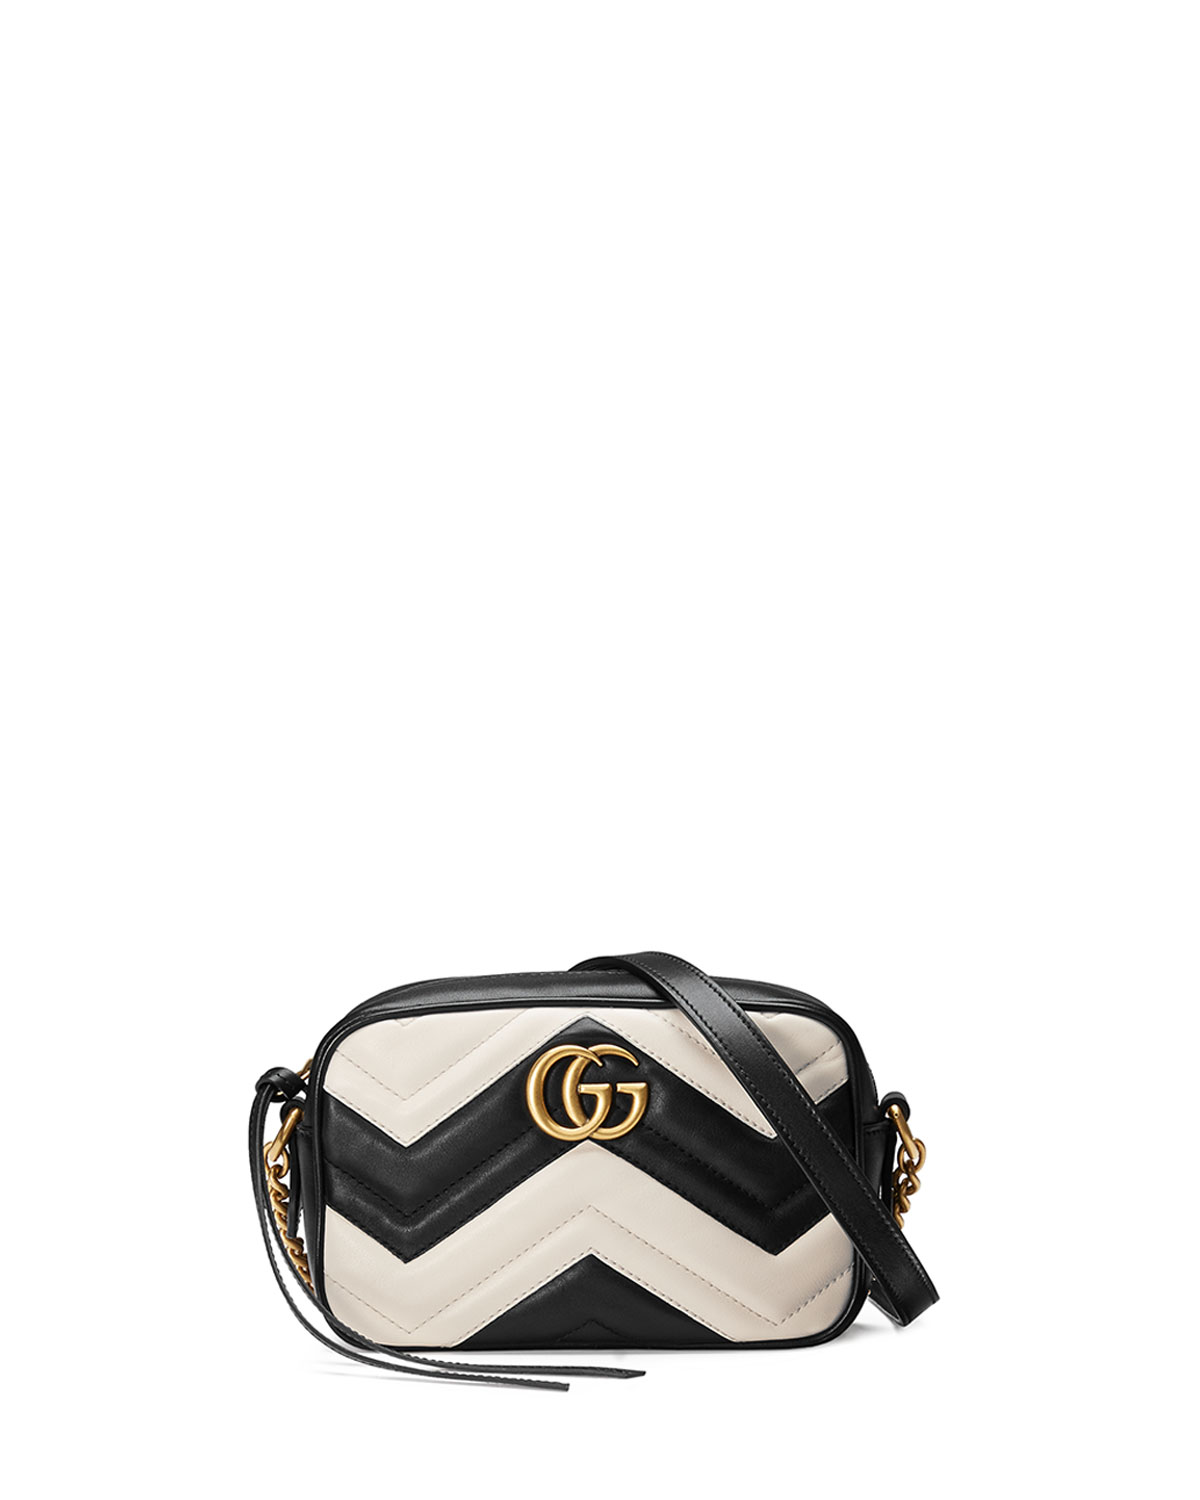 918d64ad993 Gucci GG Marmont Mini Matelassé Camera Bag